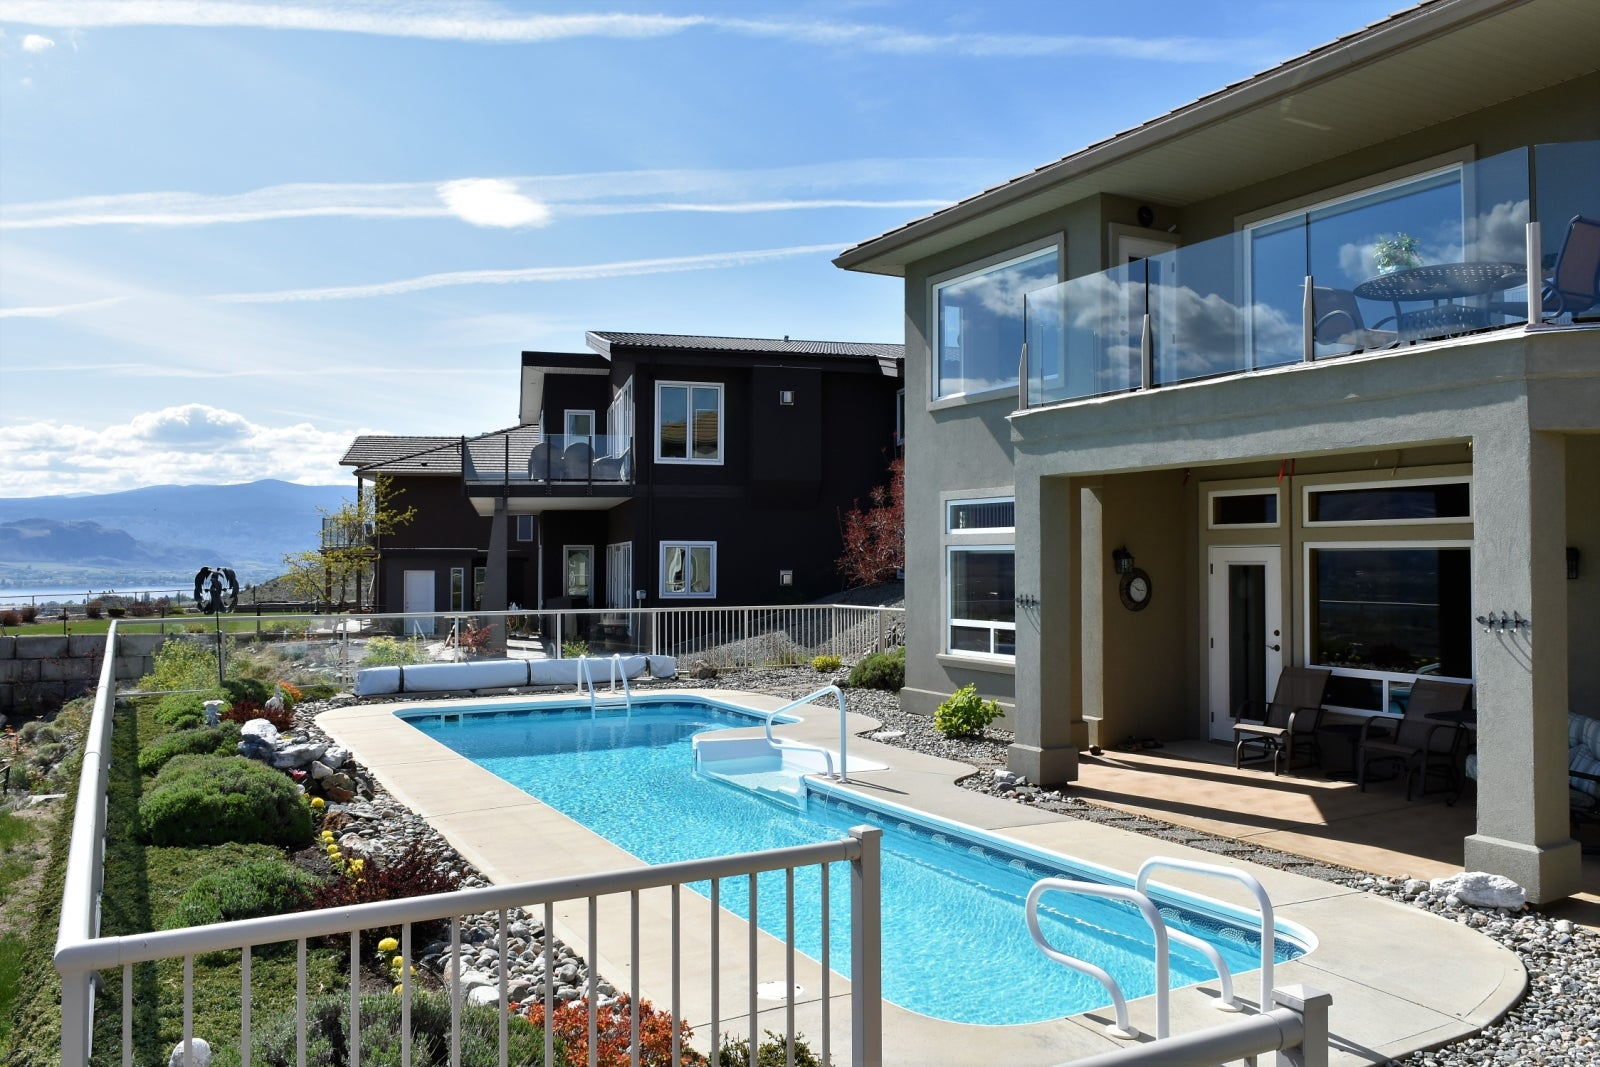 11715 Olympic View Drive - Osoyoos Single Family for sale, 4 Bedrooms (176846) #8